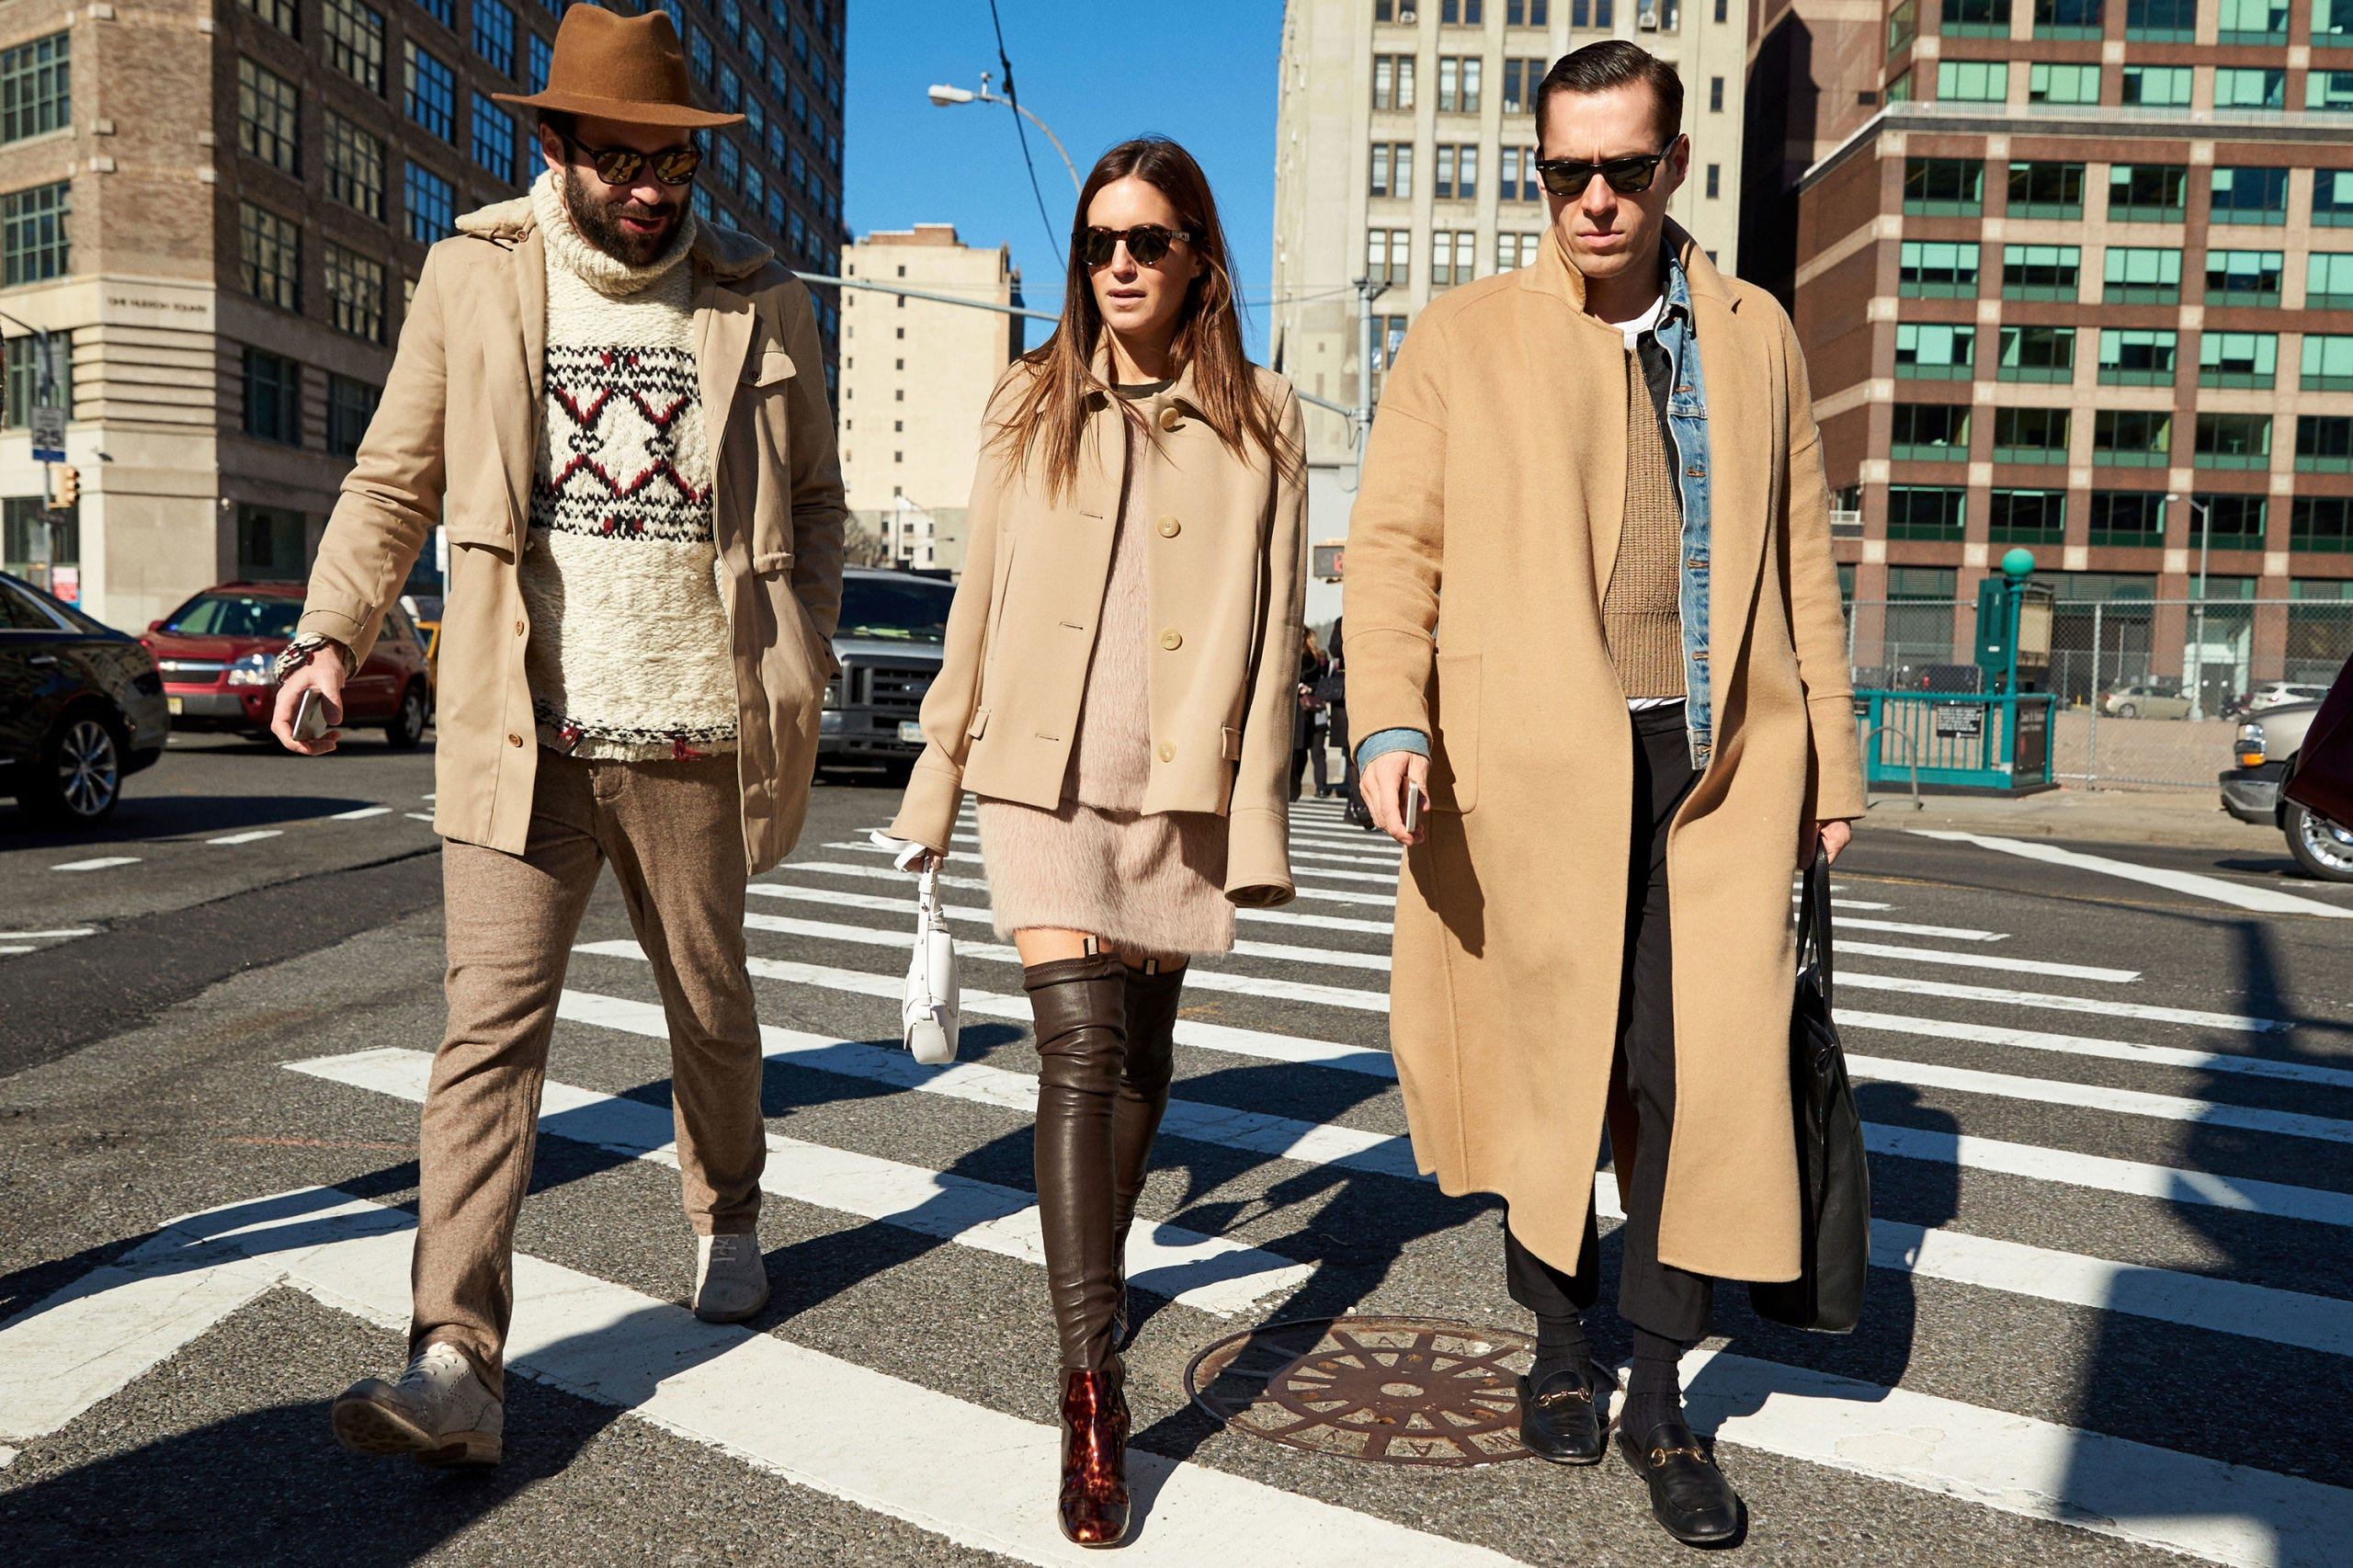 Eyewear, Vision care, Trousers, Infrastructure, Road, Pedestrian crossing, Coat, Standing, Outerwear, Street,